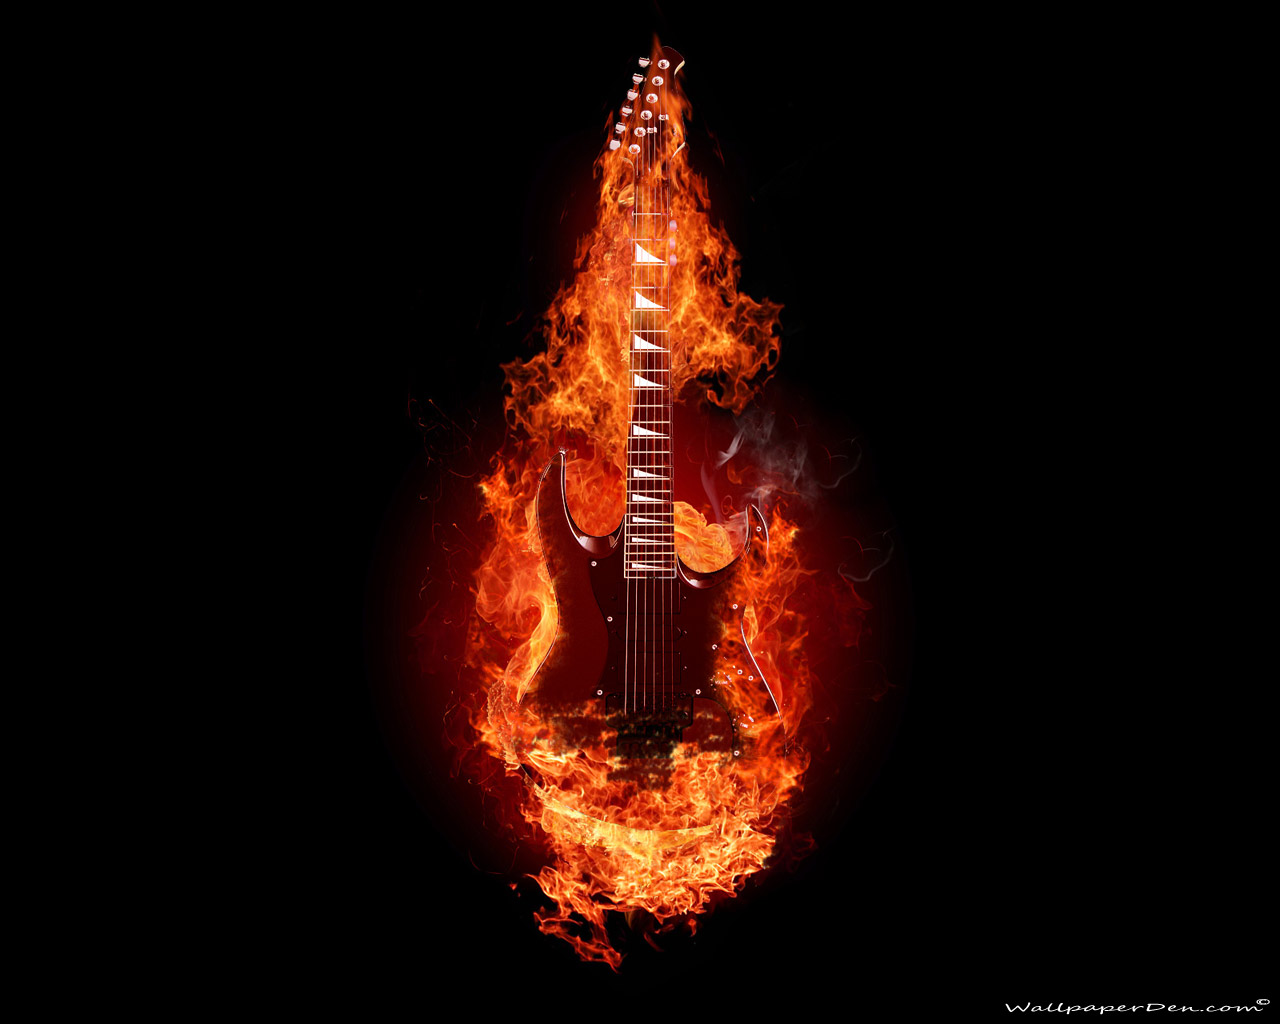 electric guitar art wallpaper fire - photo #27